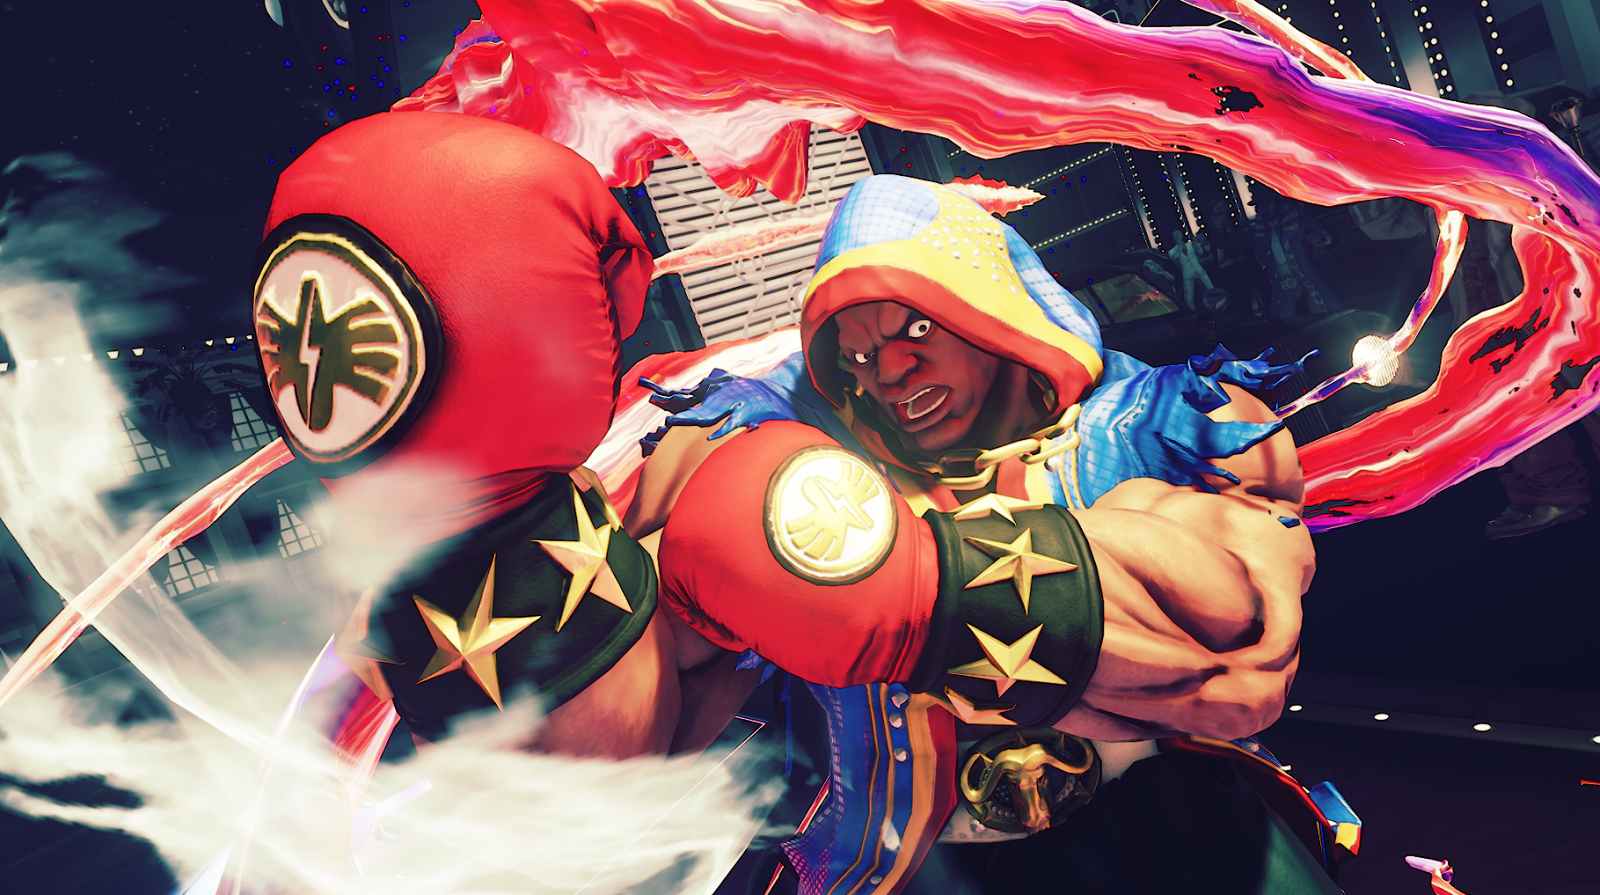 Street Fighter V Stream Loses Audio, Gets Saved By Commentator's Own Sound Effects